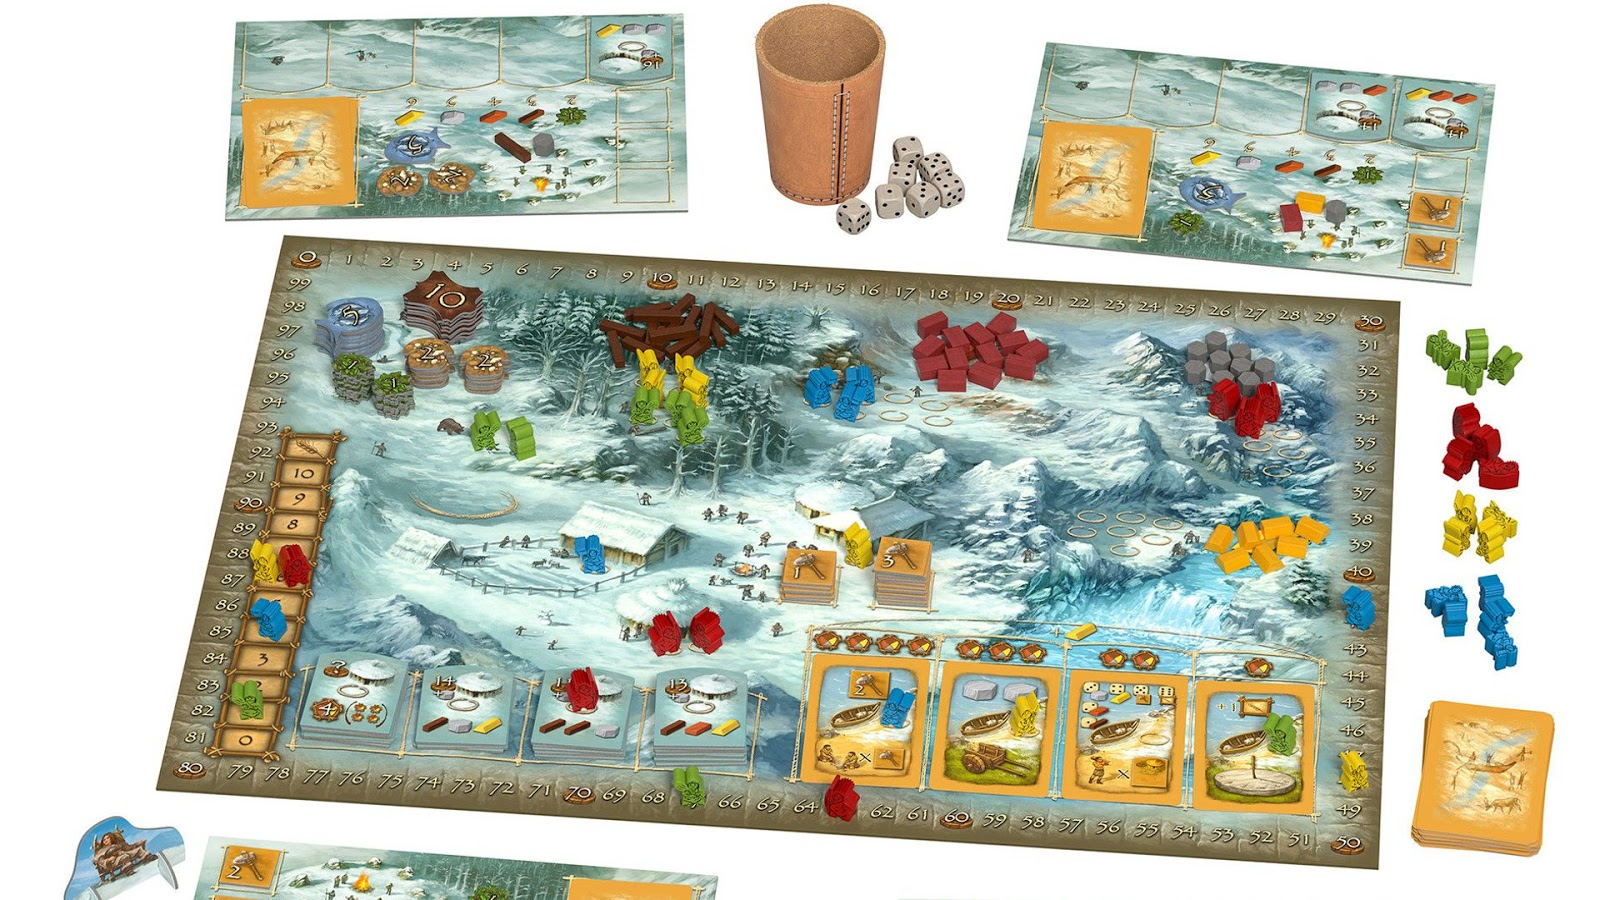 Polyhedron Collider Board Game News - STONE AGE 10th ANNIVERSARY EDITION